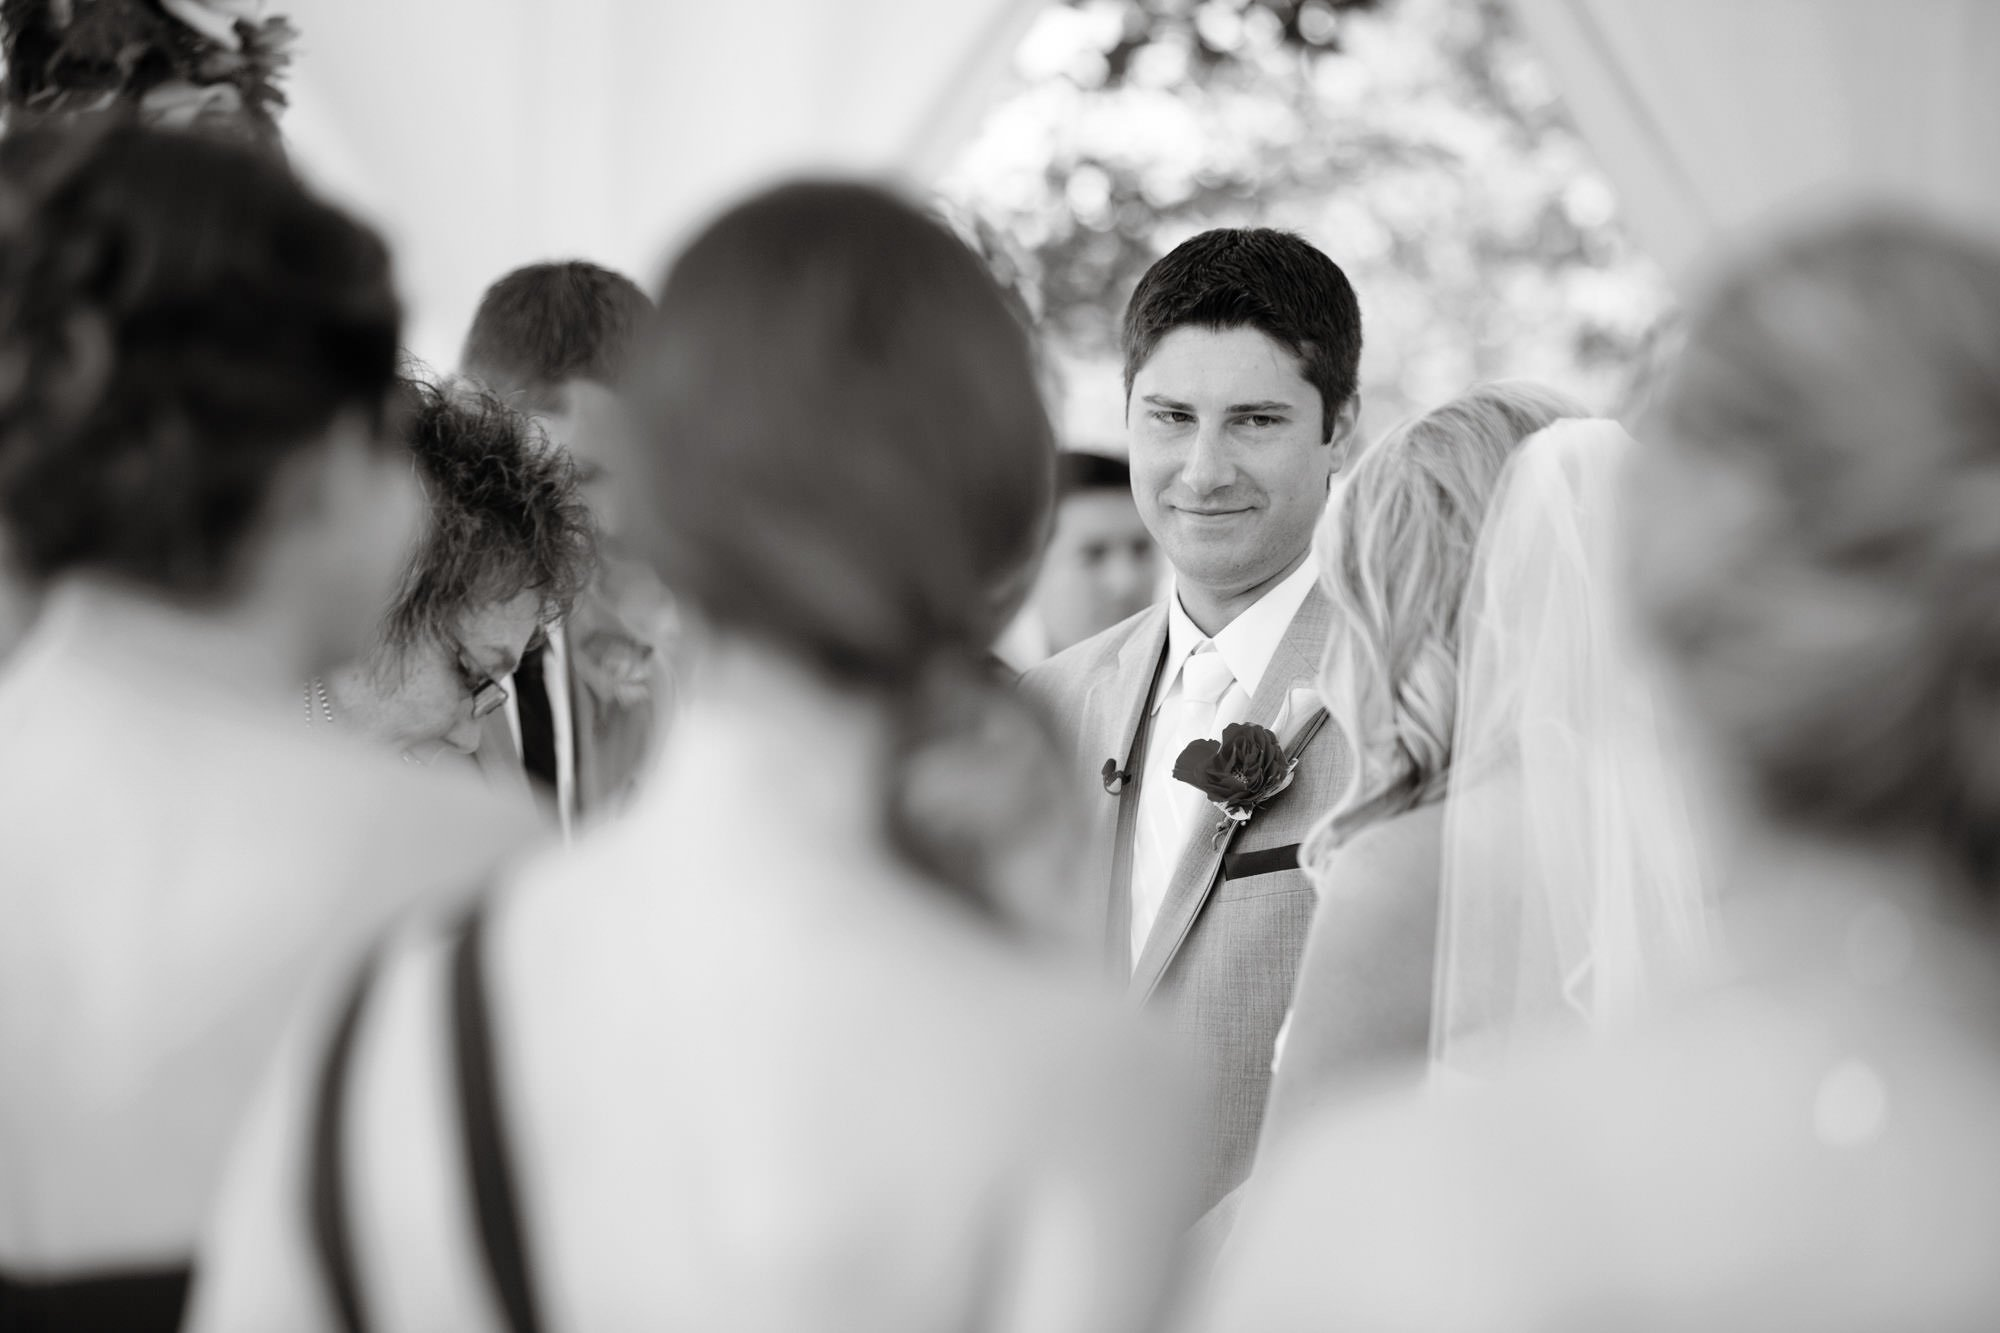 The groom looks at his bride during the wedding ceremony.